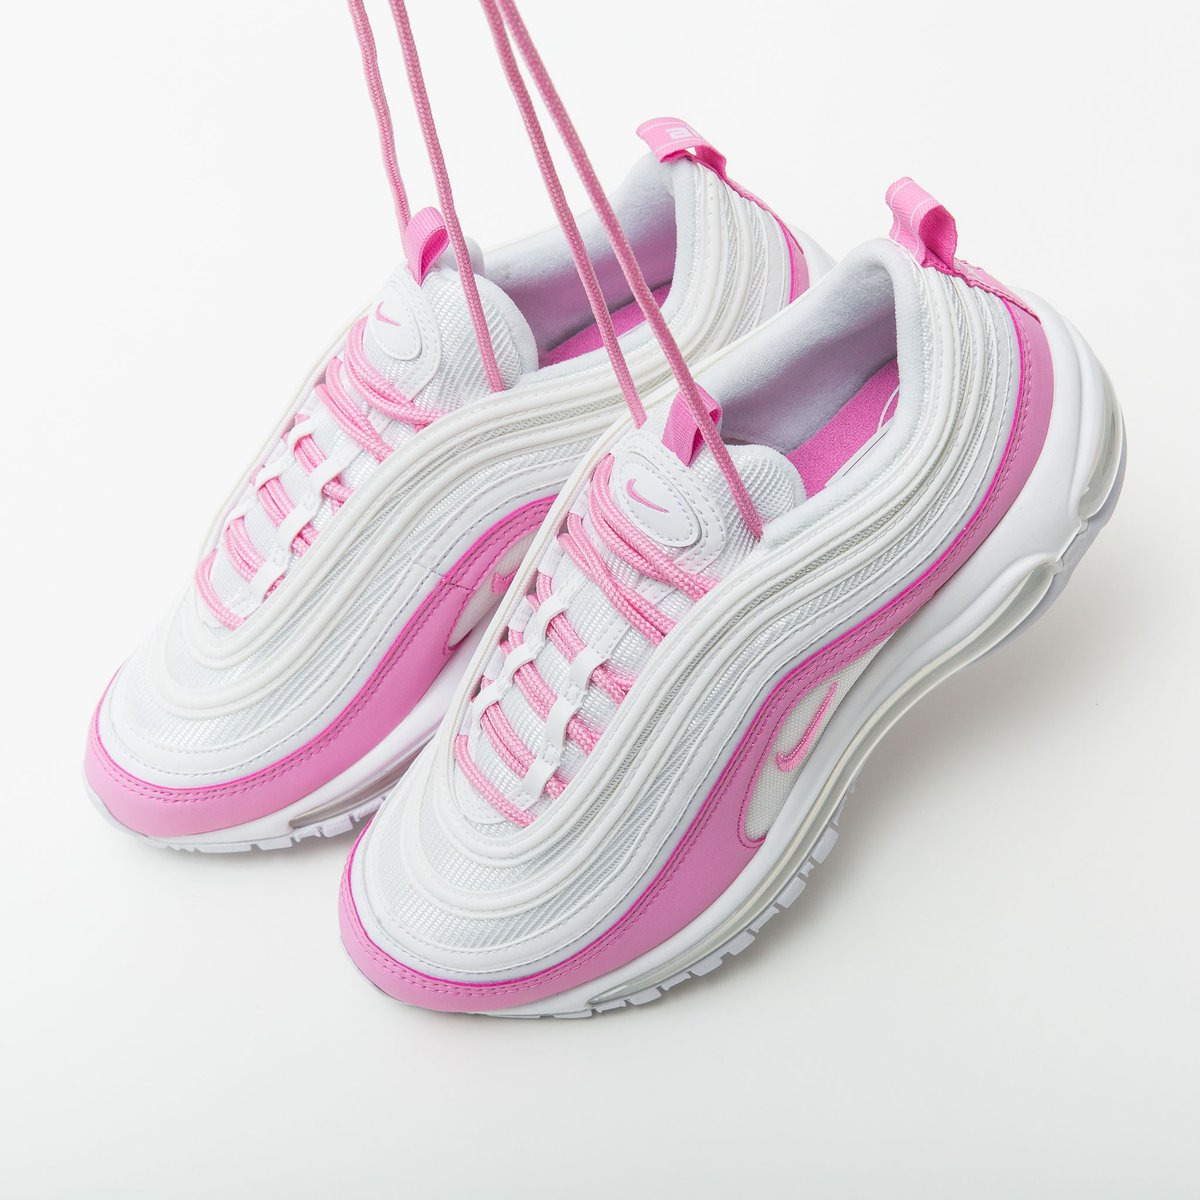 air max 97 white psychic pink